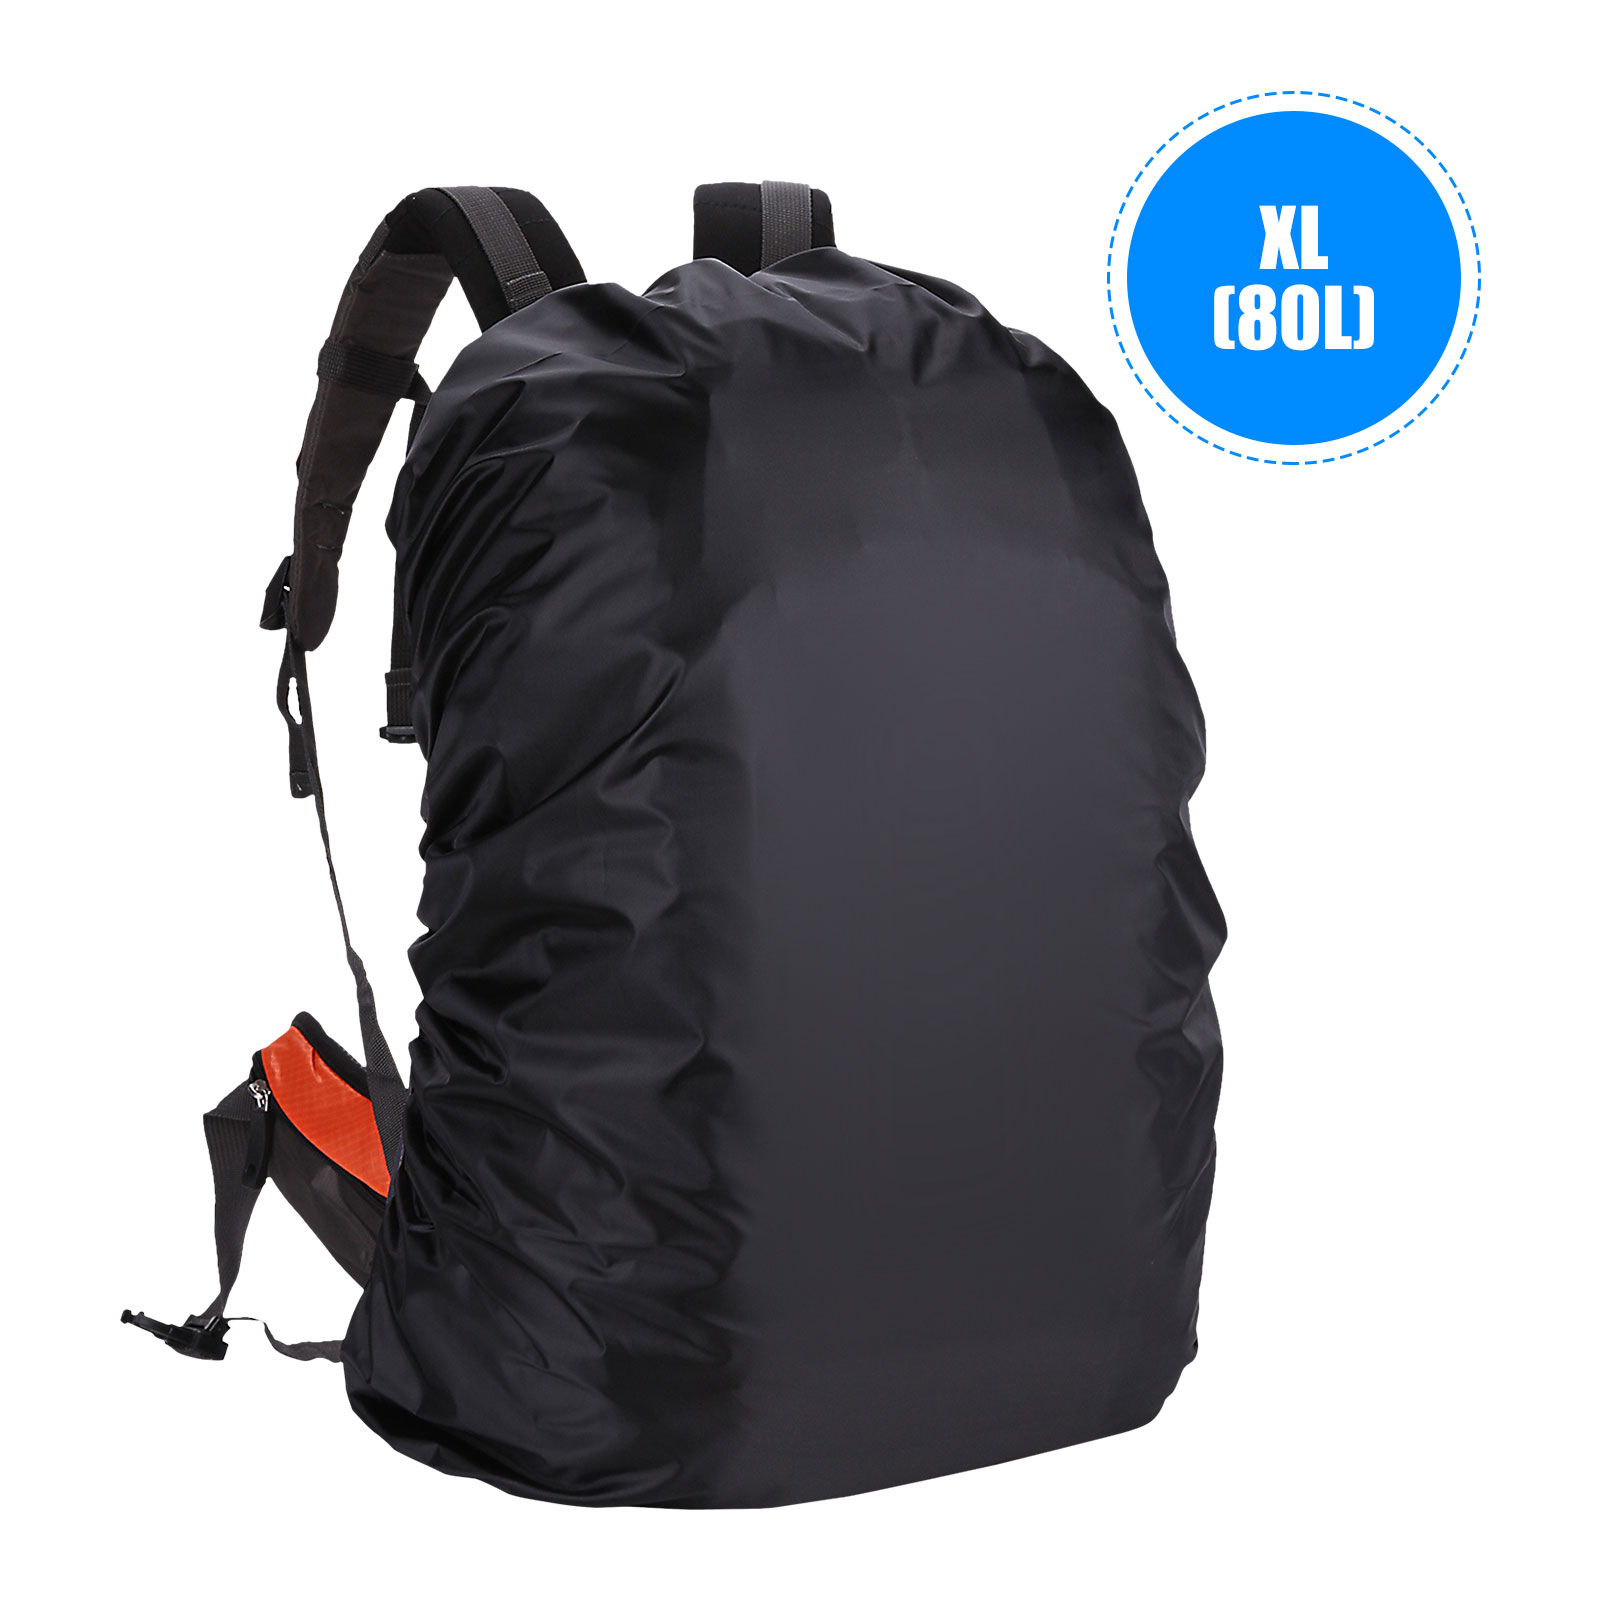 Small Foldable Waterproof Travel Backpack Hiking//Camping Rucksack Luggage Bag